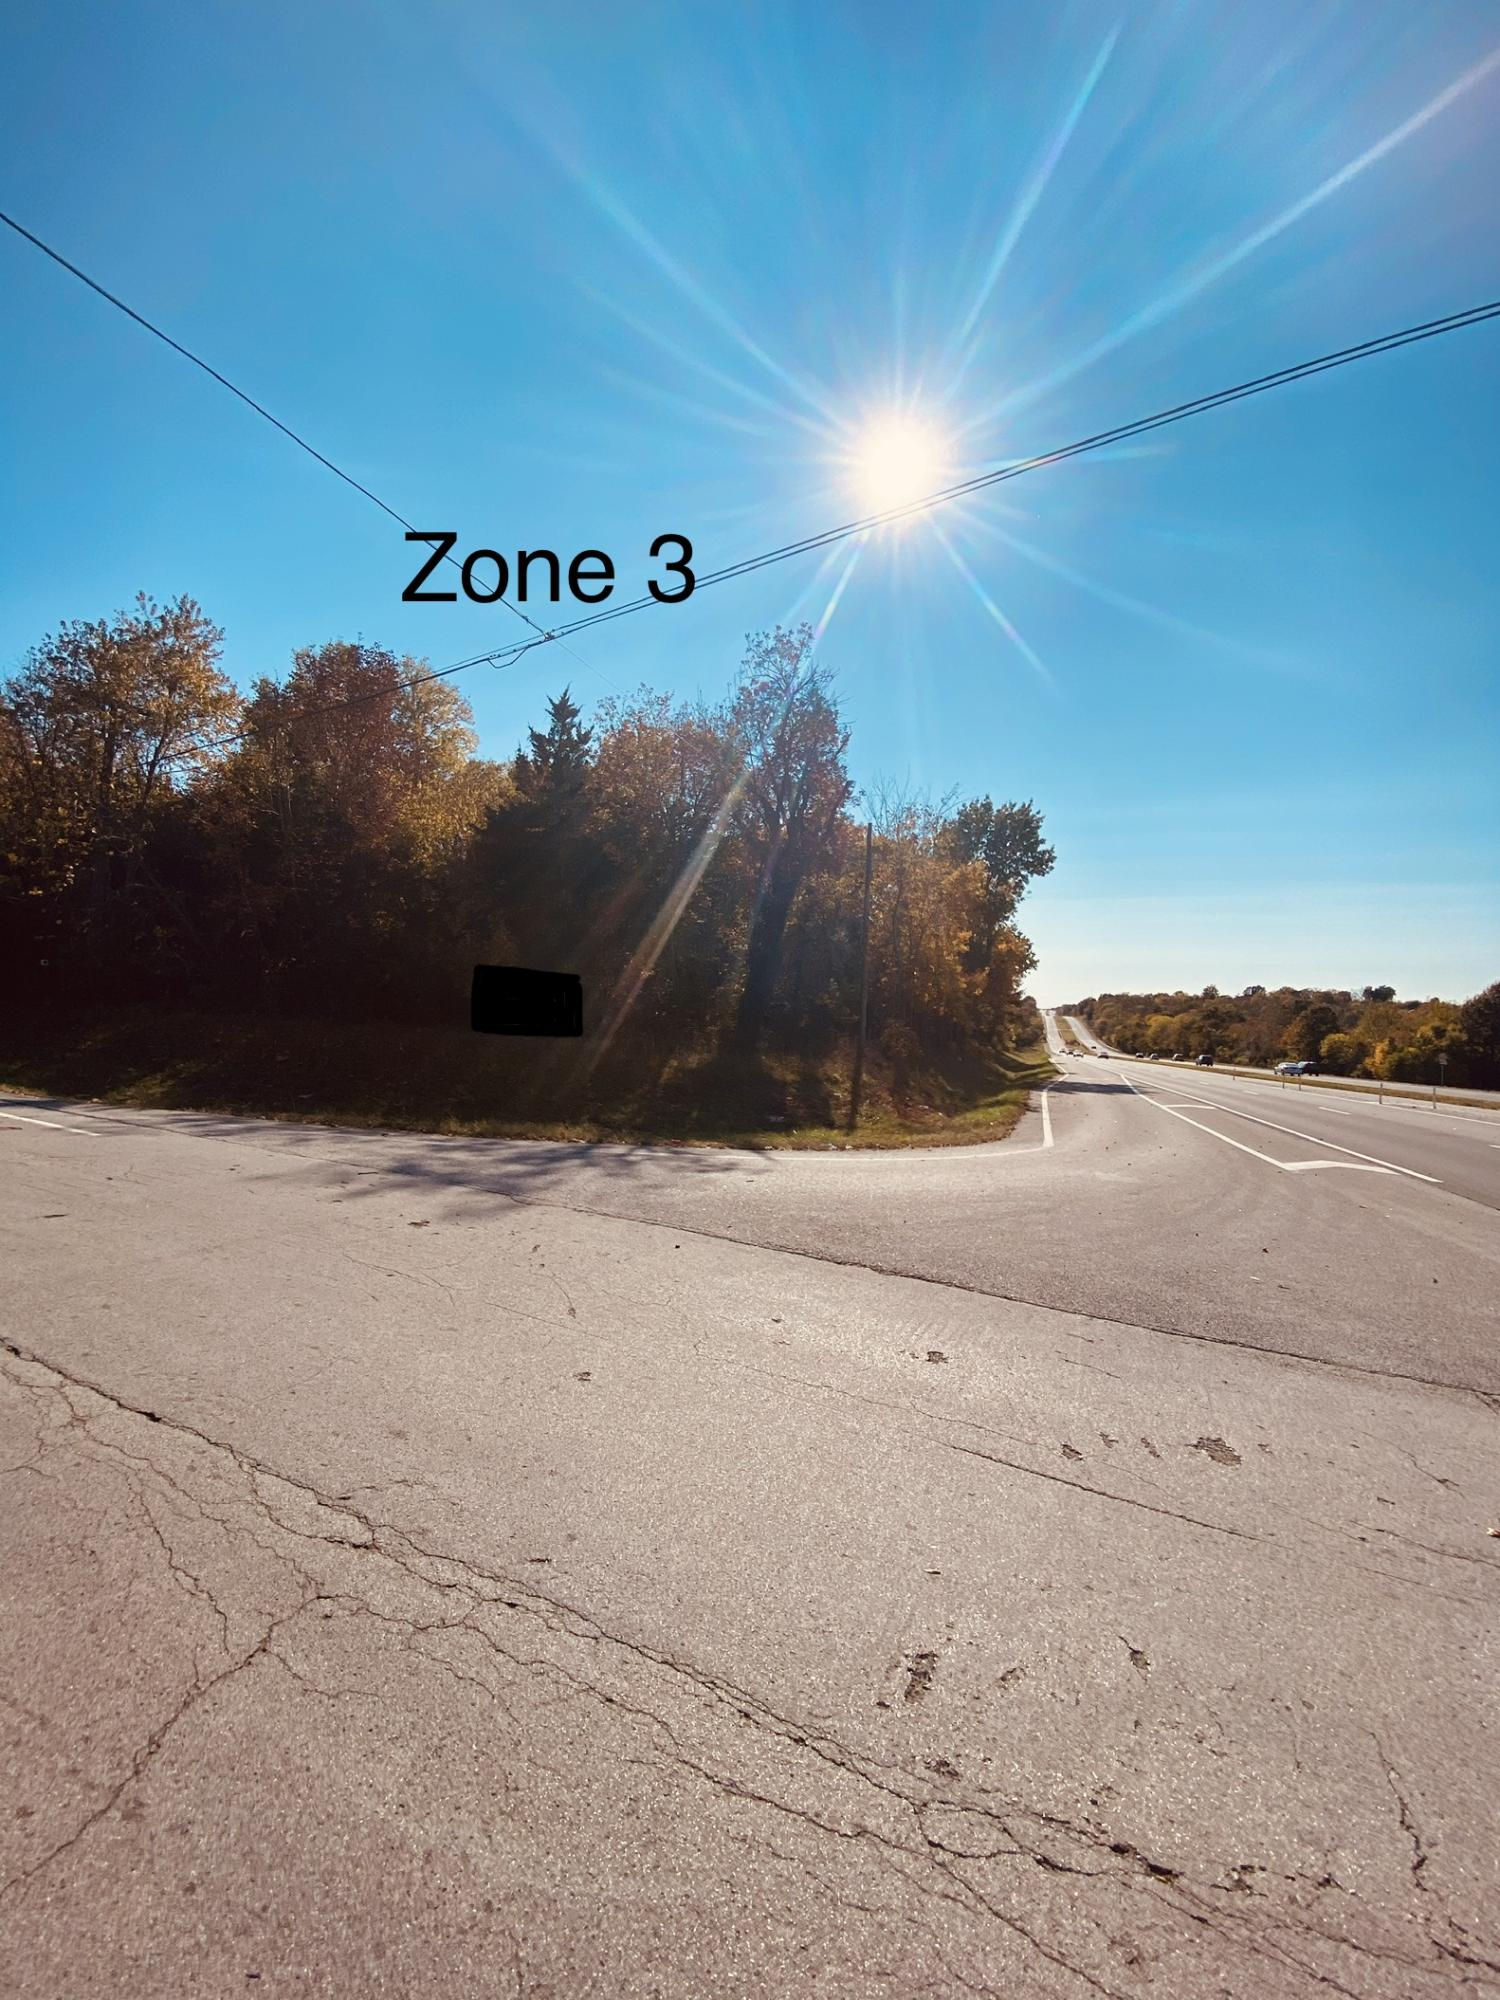 0000 South Us Highway 413 (west Sunshine) UNIT ''Zone 3'' Springfield, MO 65807